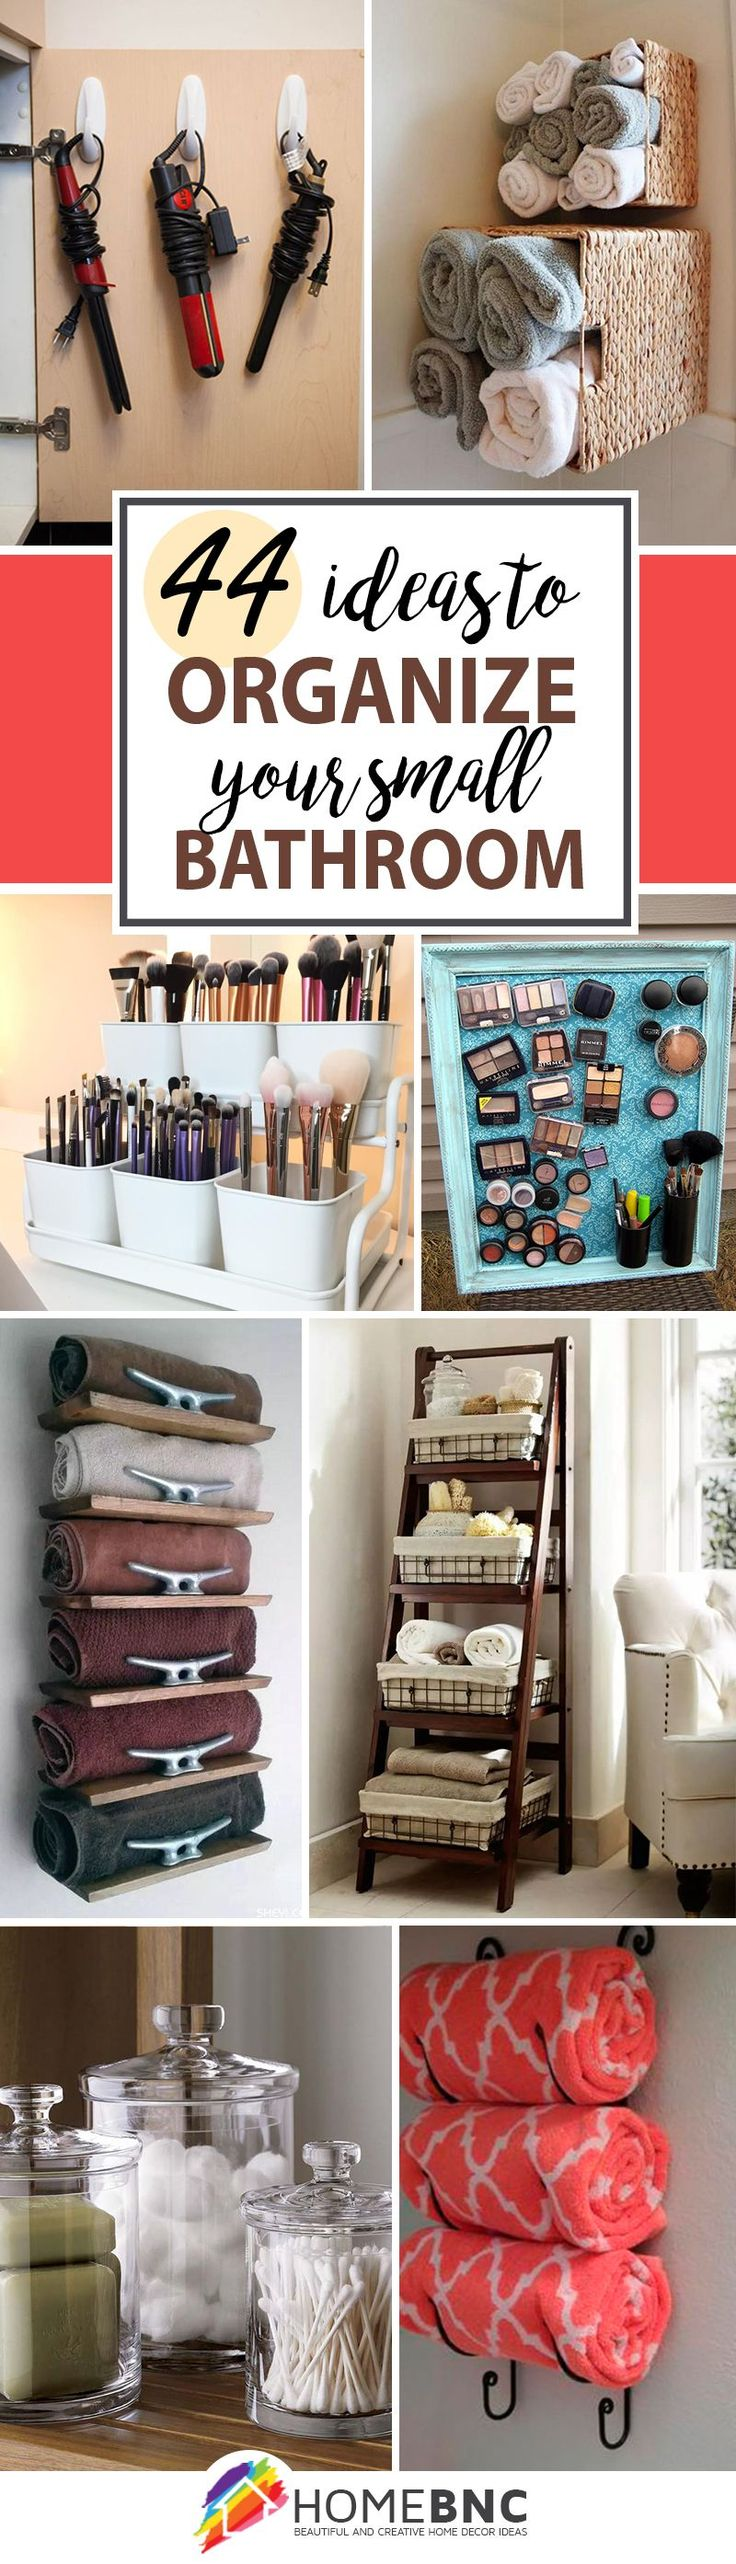 Diy bathroom storage ideas - 44 Unique Storage Ideas For A Small Bathroom To Make Yours Bigger